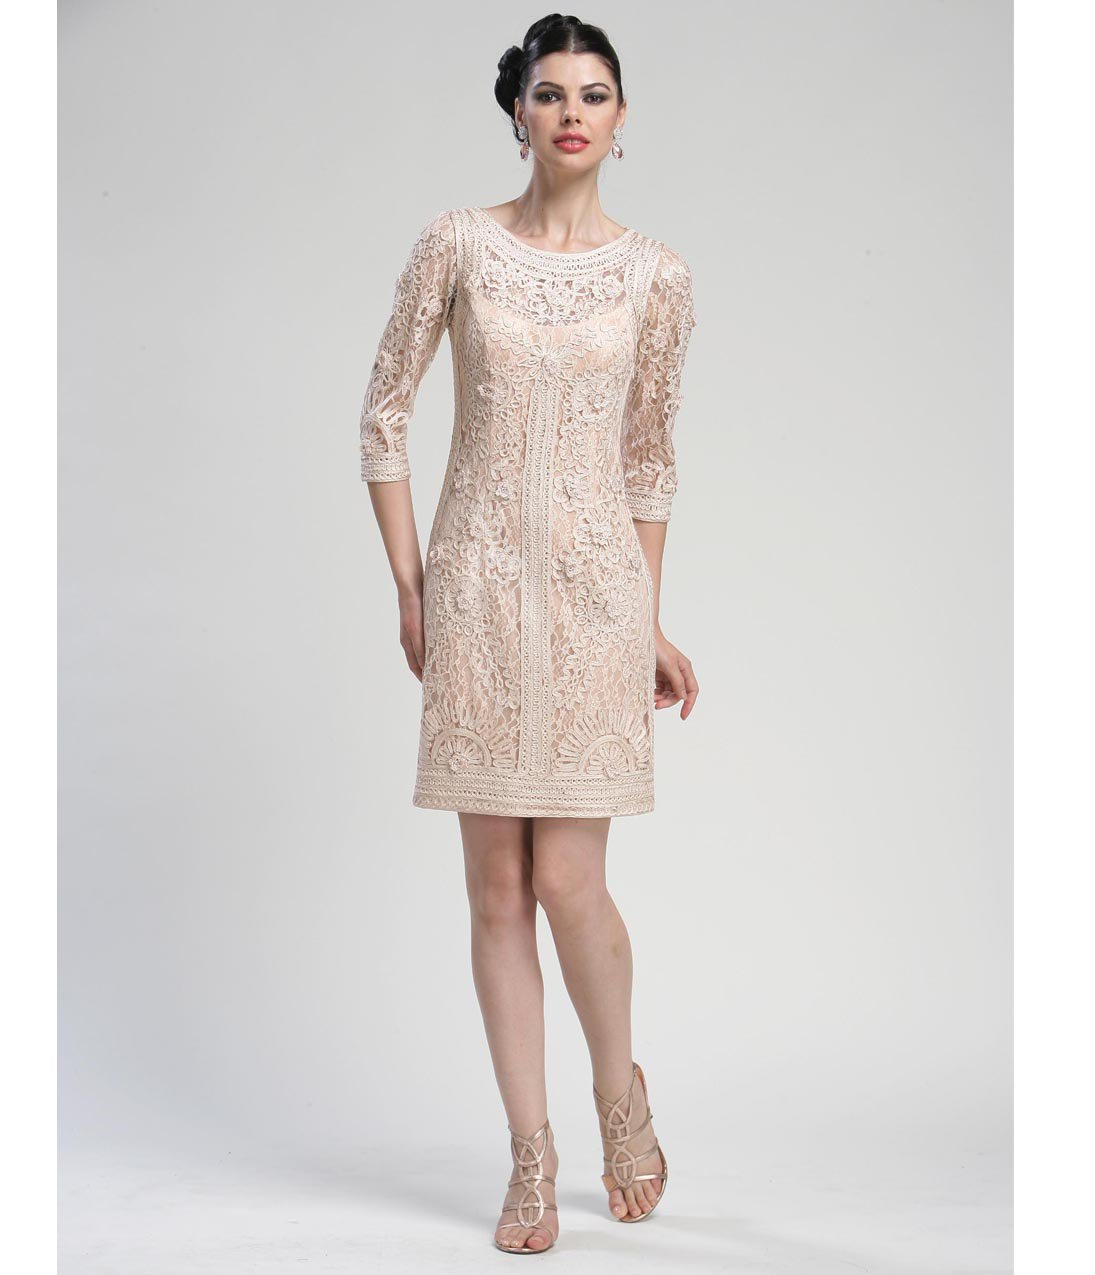 Blush Lace Long Sleeved Cocktail Dress from Unique Vintage